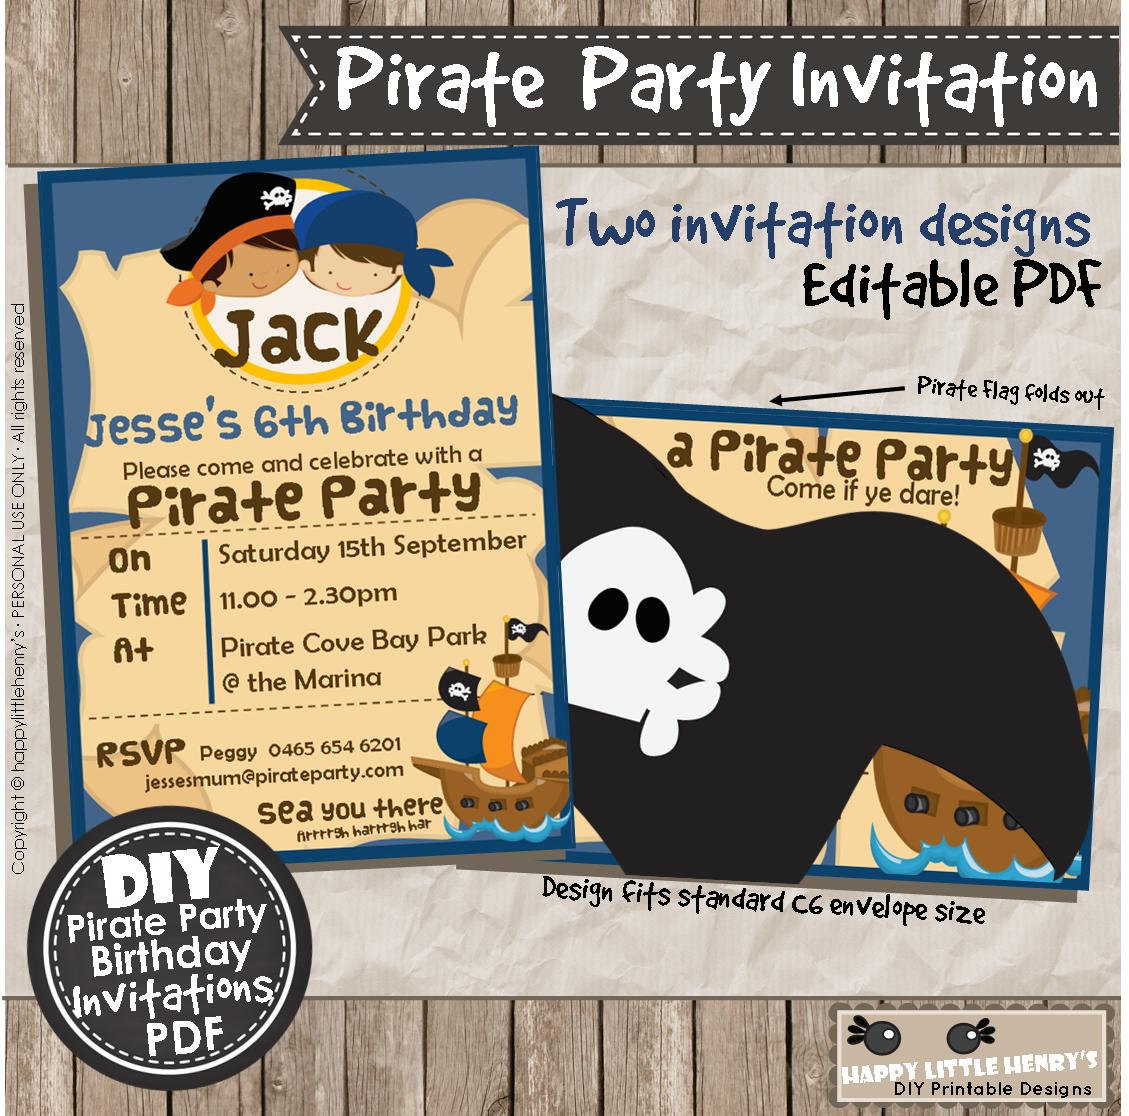 Pirate party invitations instant download pdf diy editable pirate party invitations instant download pdf diy editable birthday invite printable party decoration navy blue orange papercraft filmwisefo